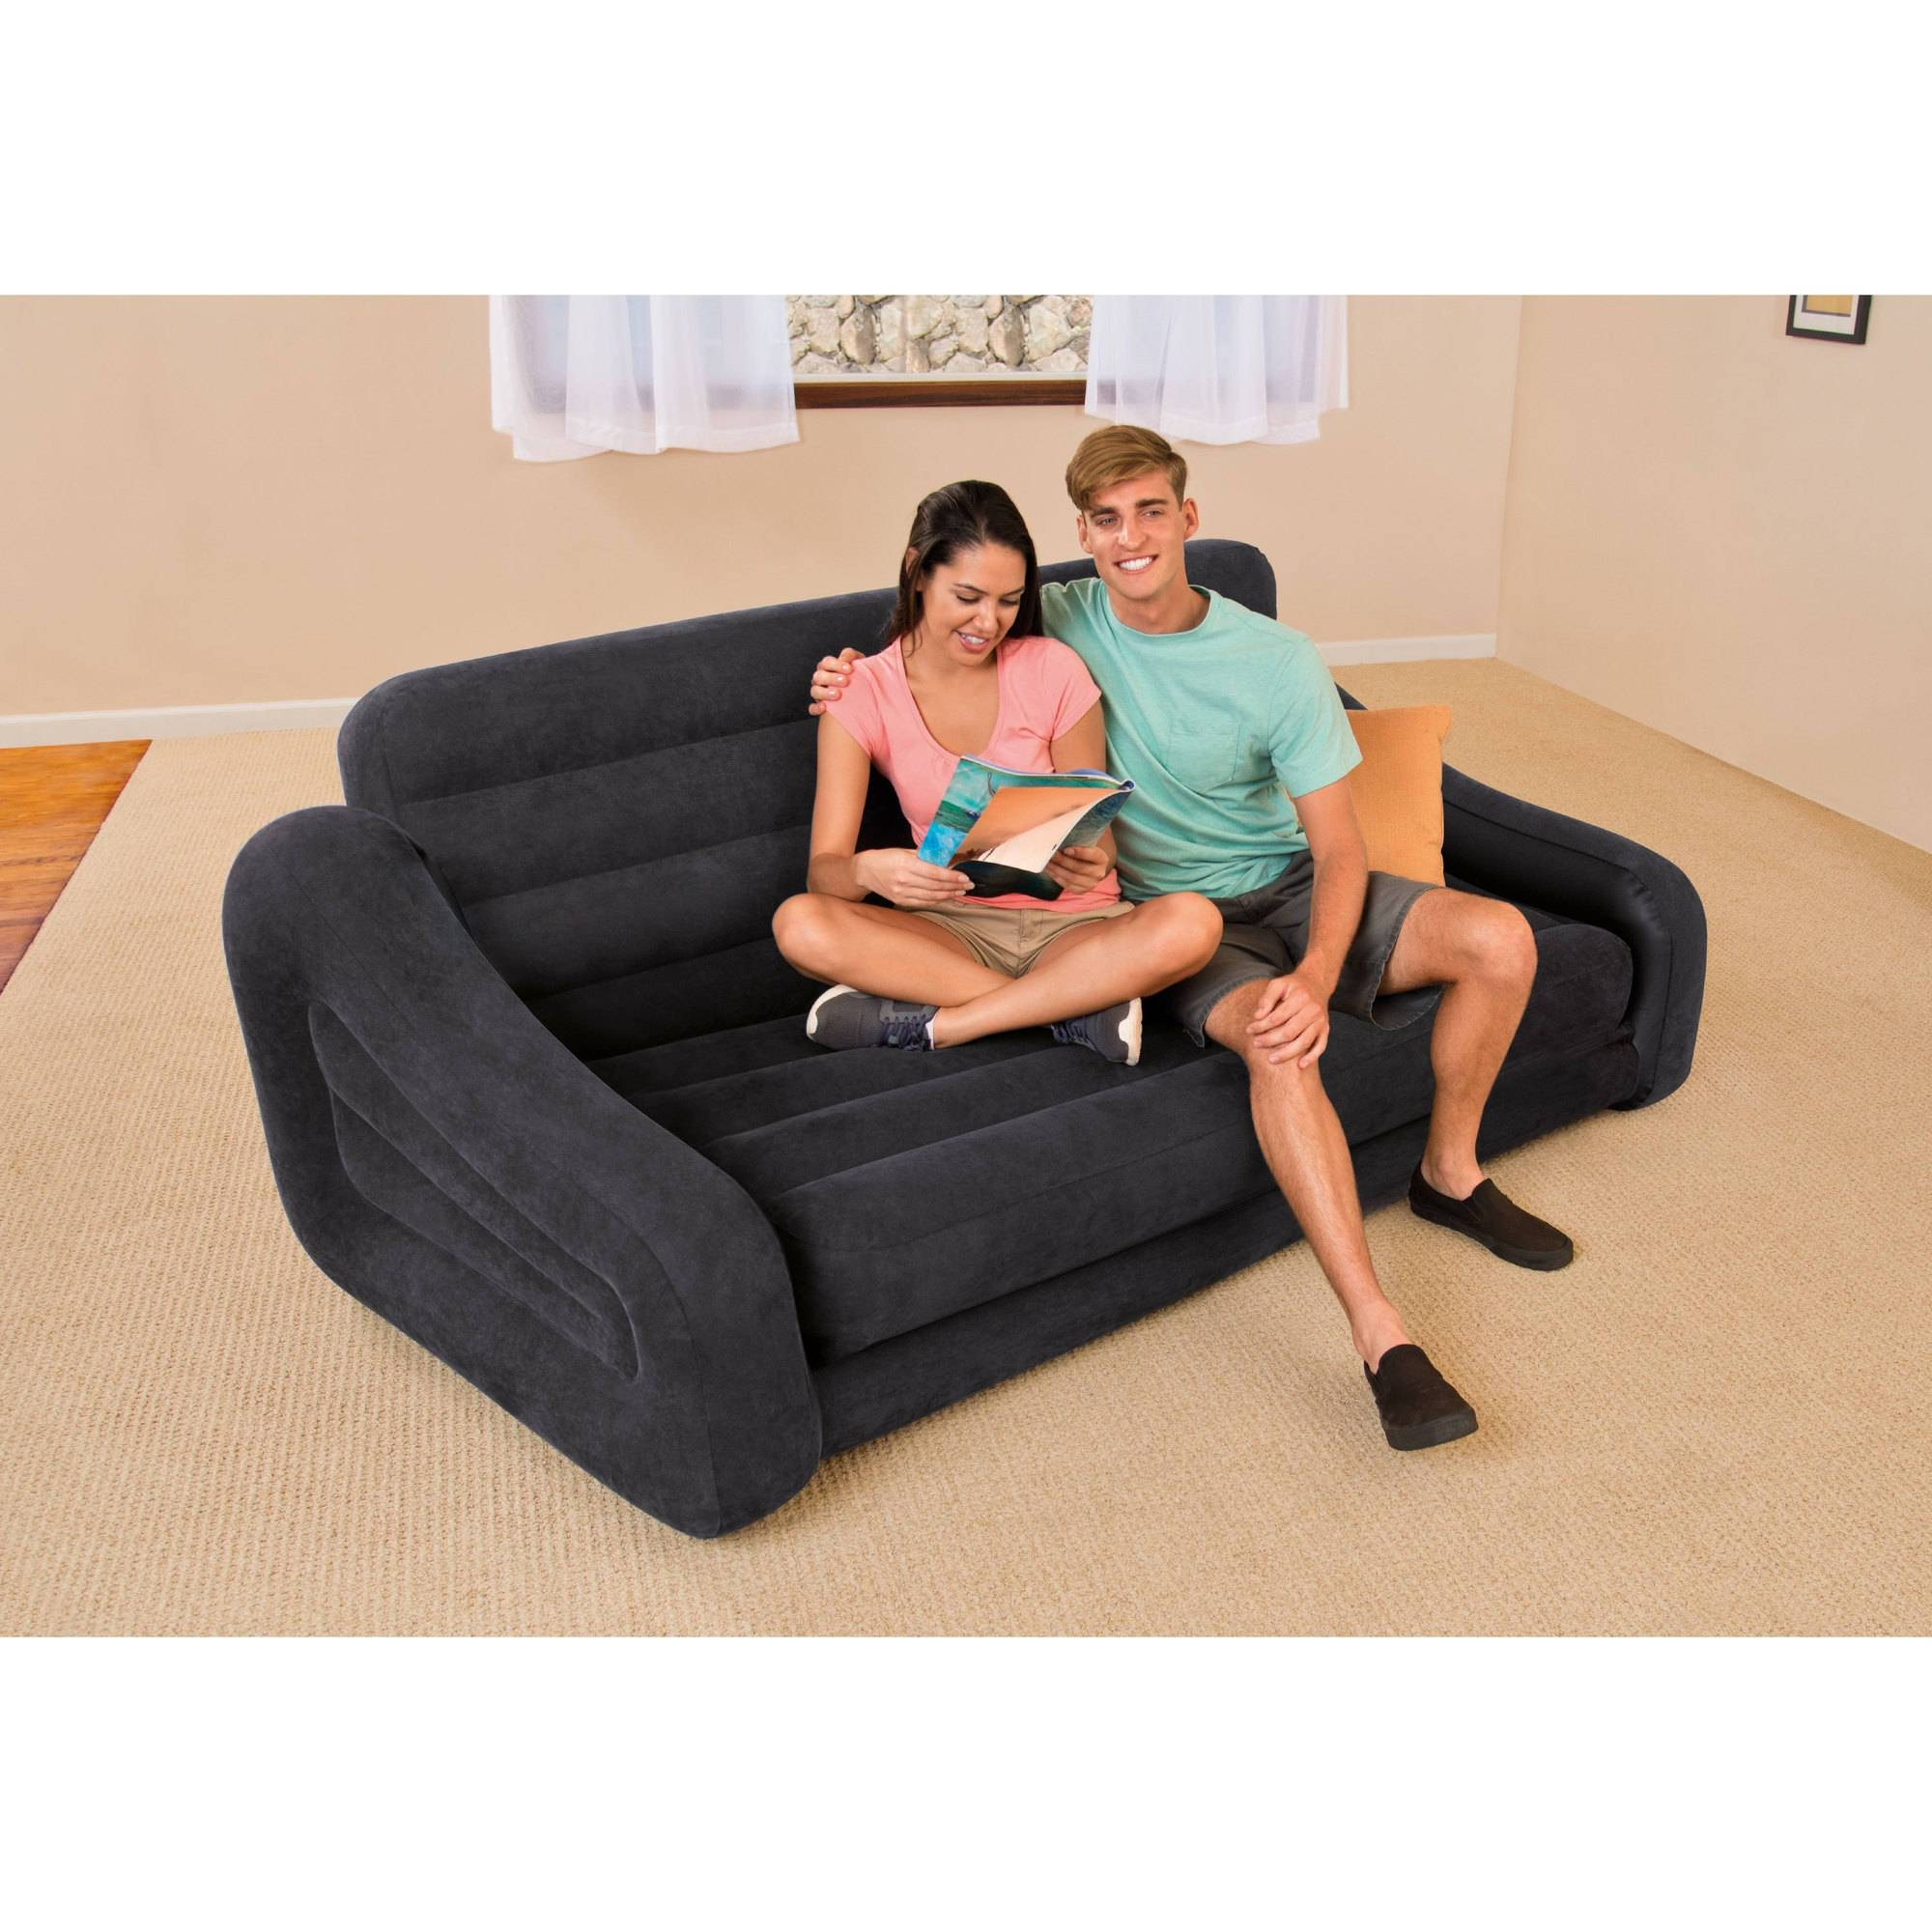 Intex Queen Inflatable Pull Out Sofa Bed - Walmart inside Intex Sleep Sofas (Image 12 of 15)